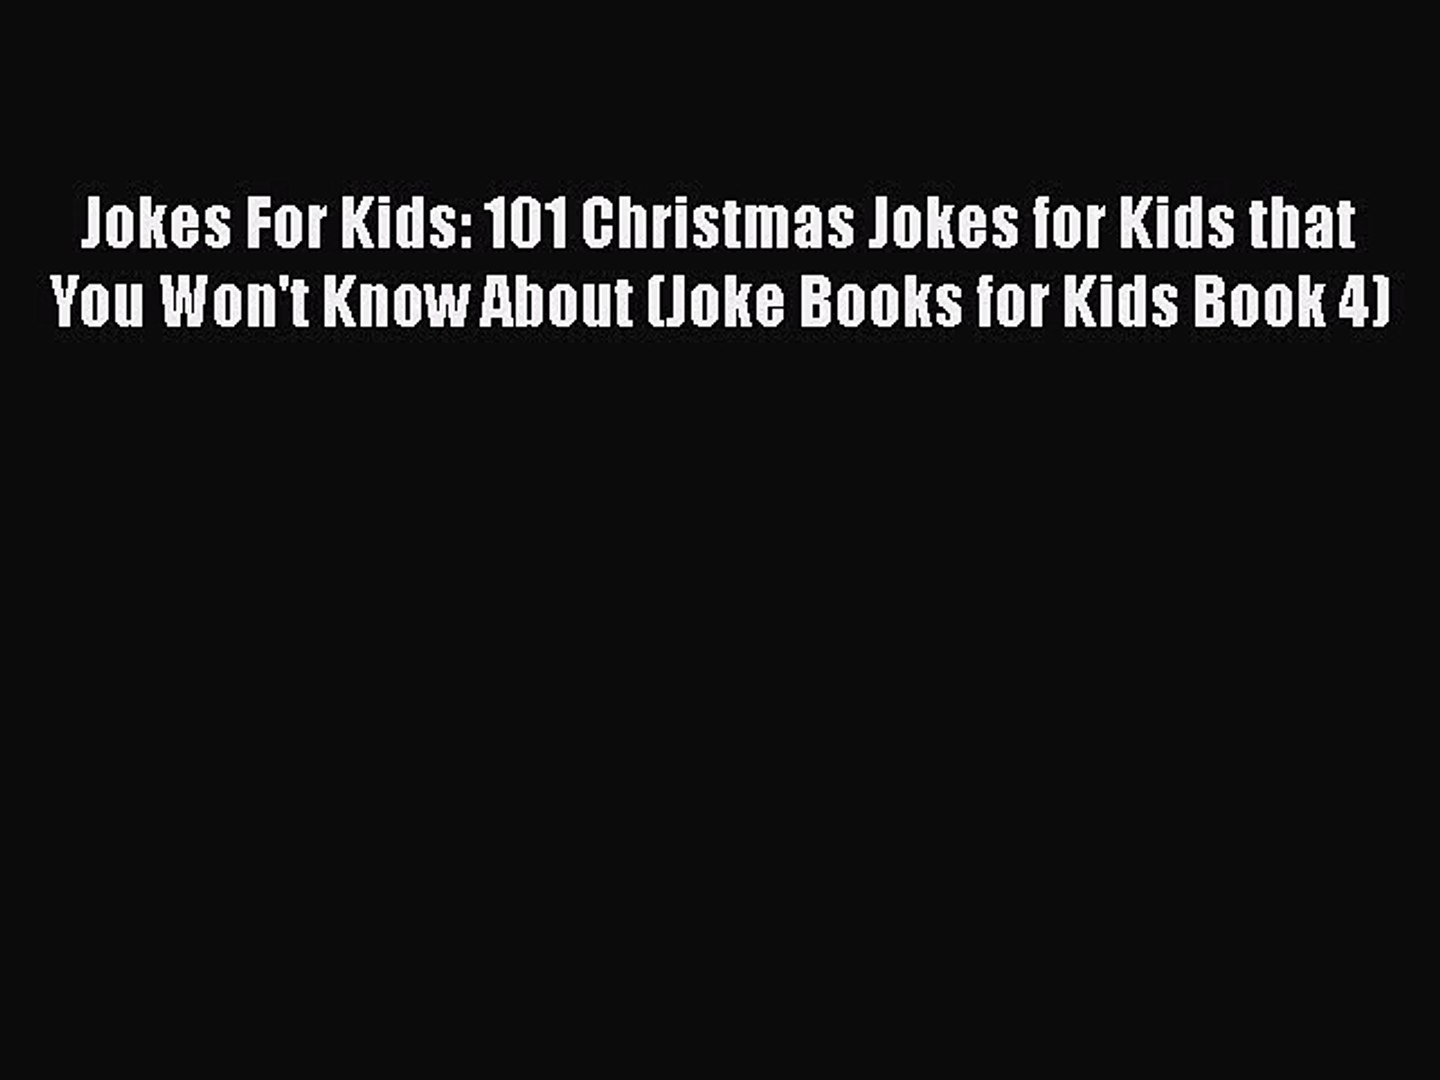 Jokes For Kids: 101 Christmas Jokes for Kids that You Won't Know About (Joke Books for Kids